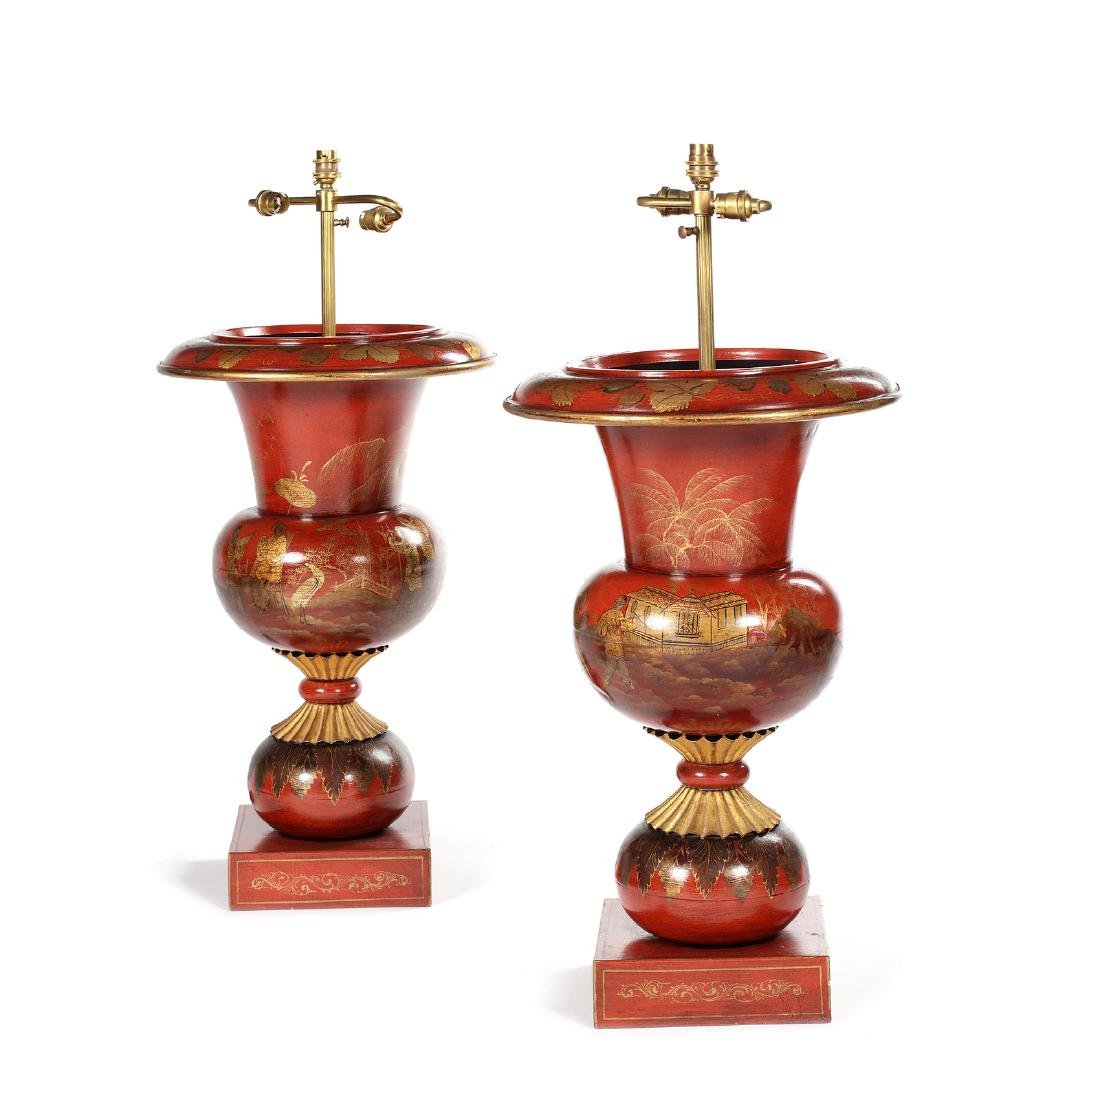 A large pair of tôleware red chinoiserie lamp bases